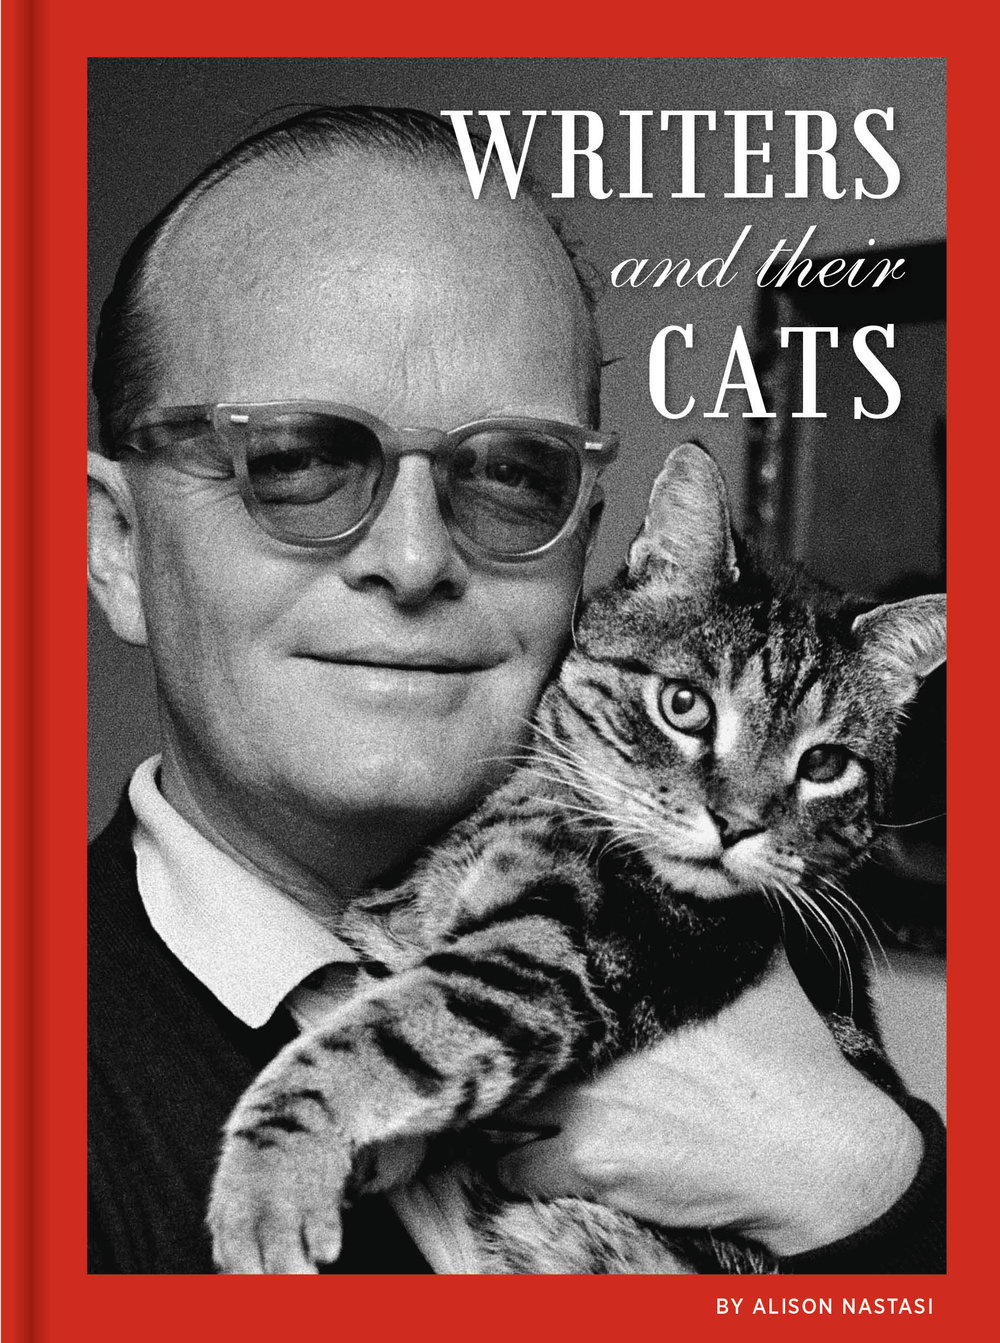 All pictures are from  Writers and Their Cats  by Alison Nastasi, published by Chronicle Books 2018, https://www.amazon.com/Writers-Their-Cats-Alison-Nastasi/dp/1452164576